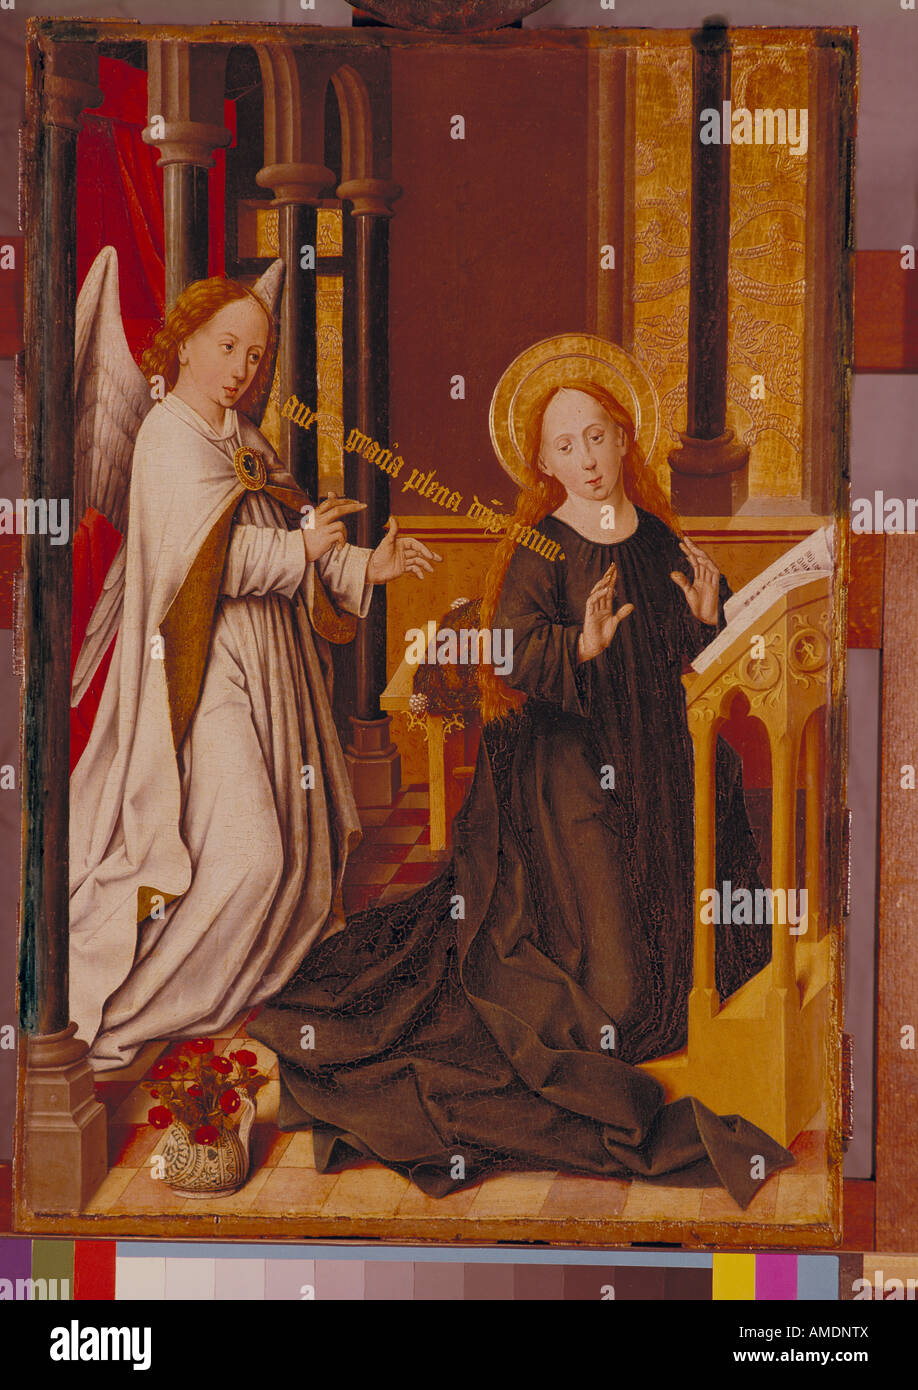 "fine arts, Herlin, Friedrich, (circa 1459 - circa 1500), painting,  ""Verkündigung an Maria"", ""Annunciation"", 15th century, state gallery,  Karlsruhe, ..."